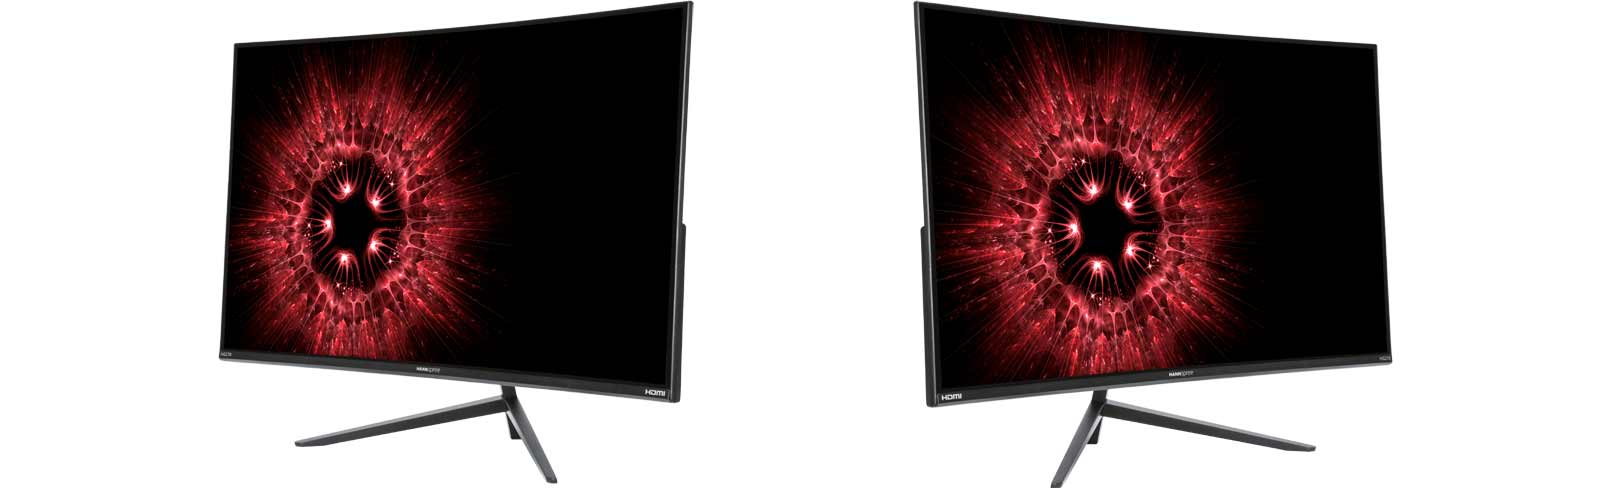 """The Hannspree HG270PCH is launched with a 27"""" FHD curved VA panel and 240Hz refresh rate"""